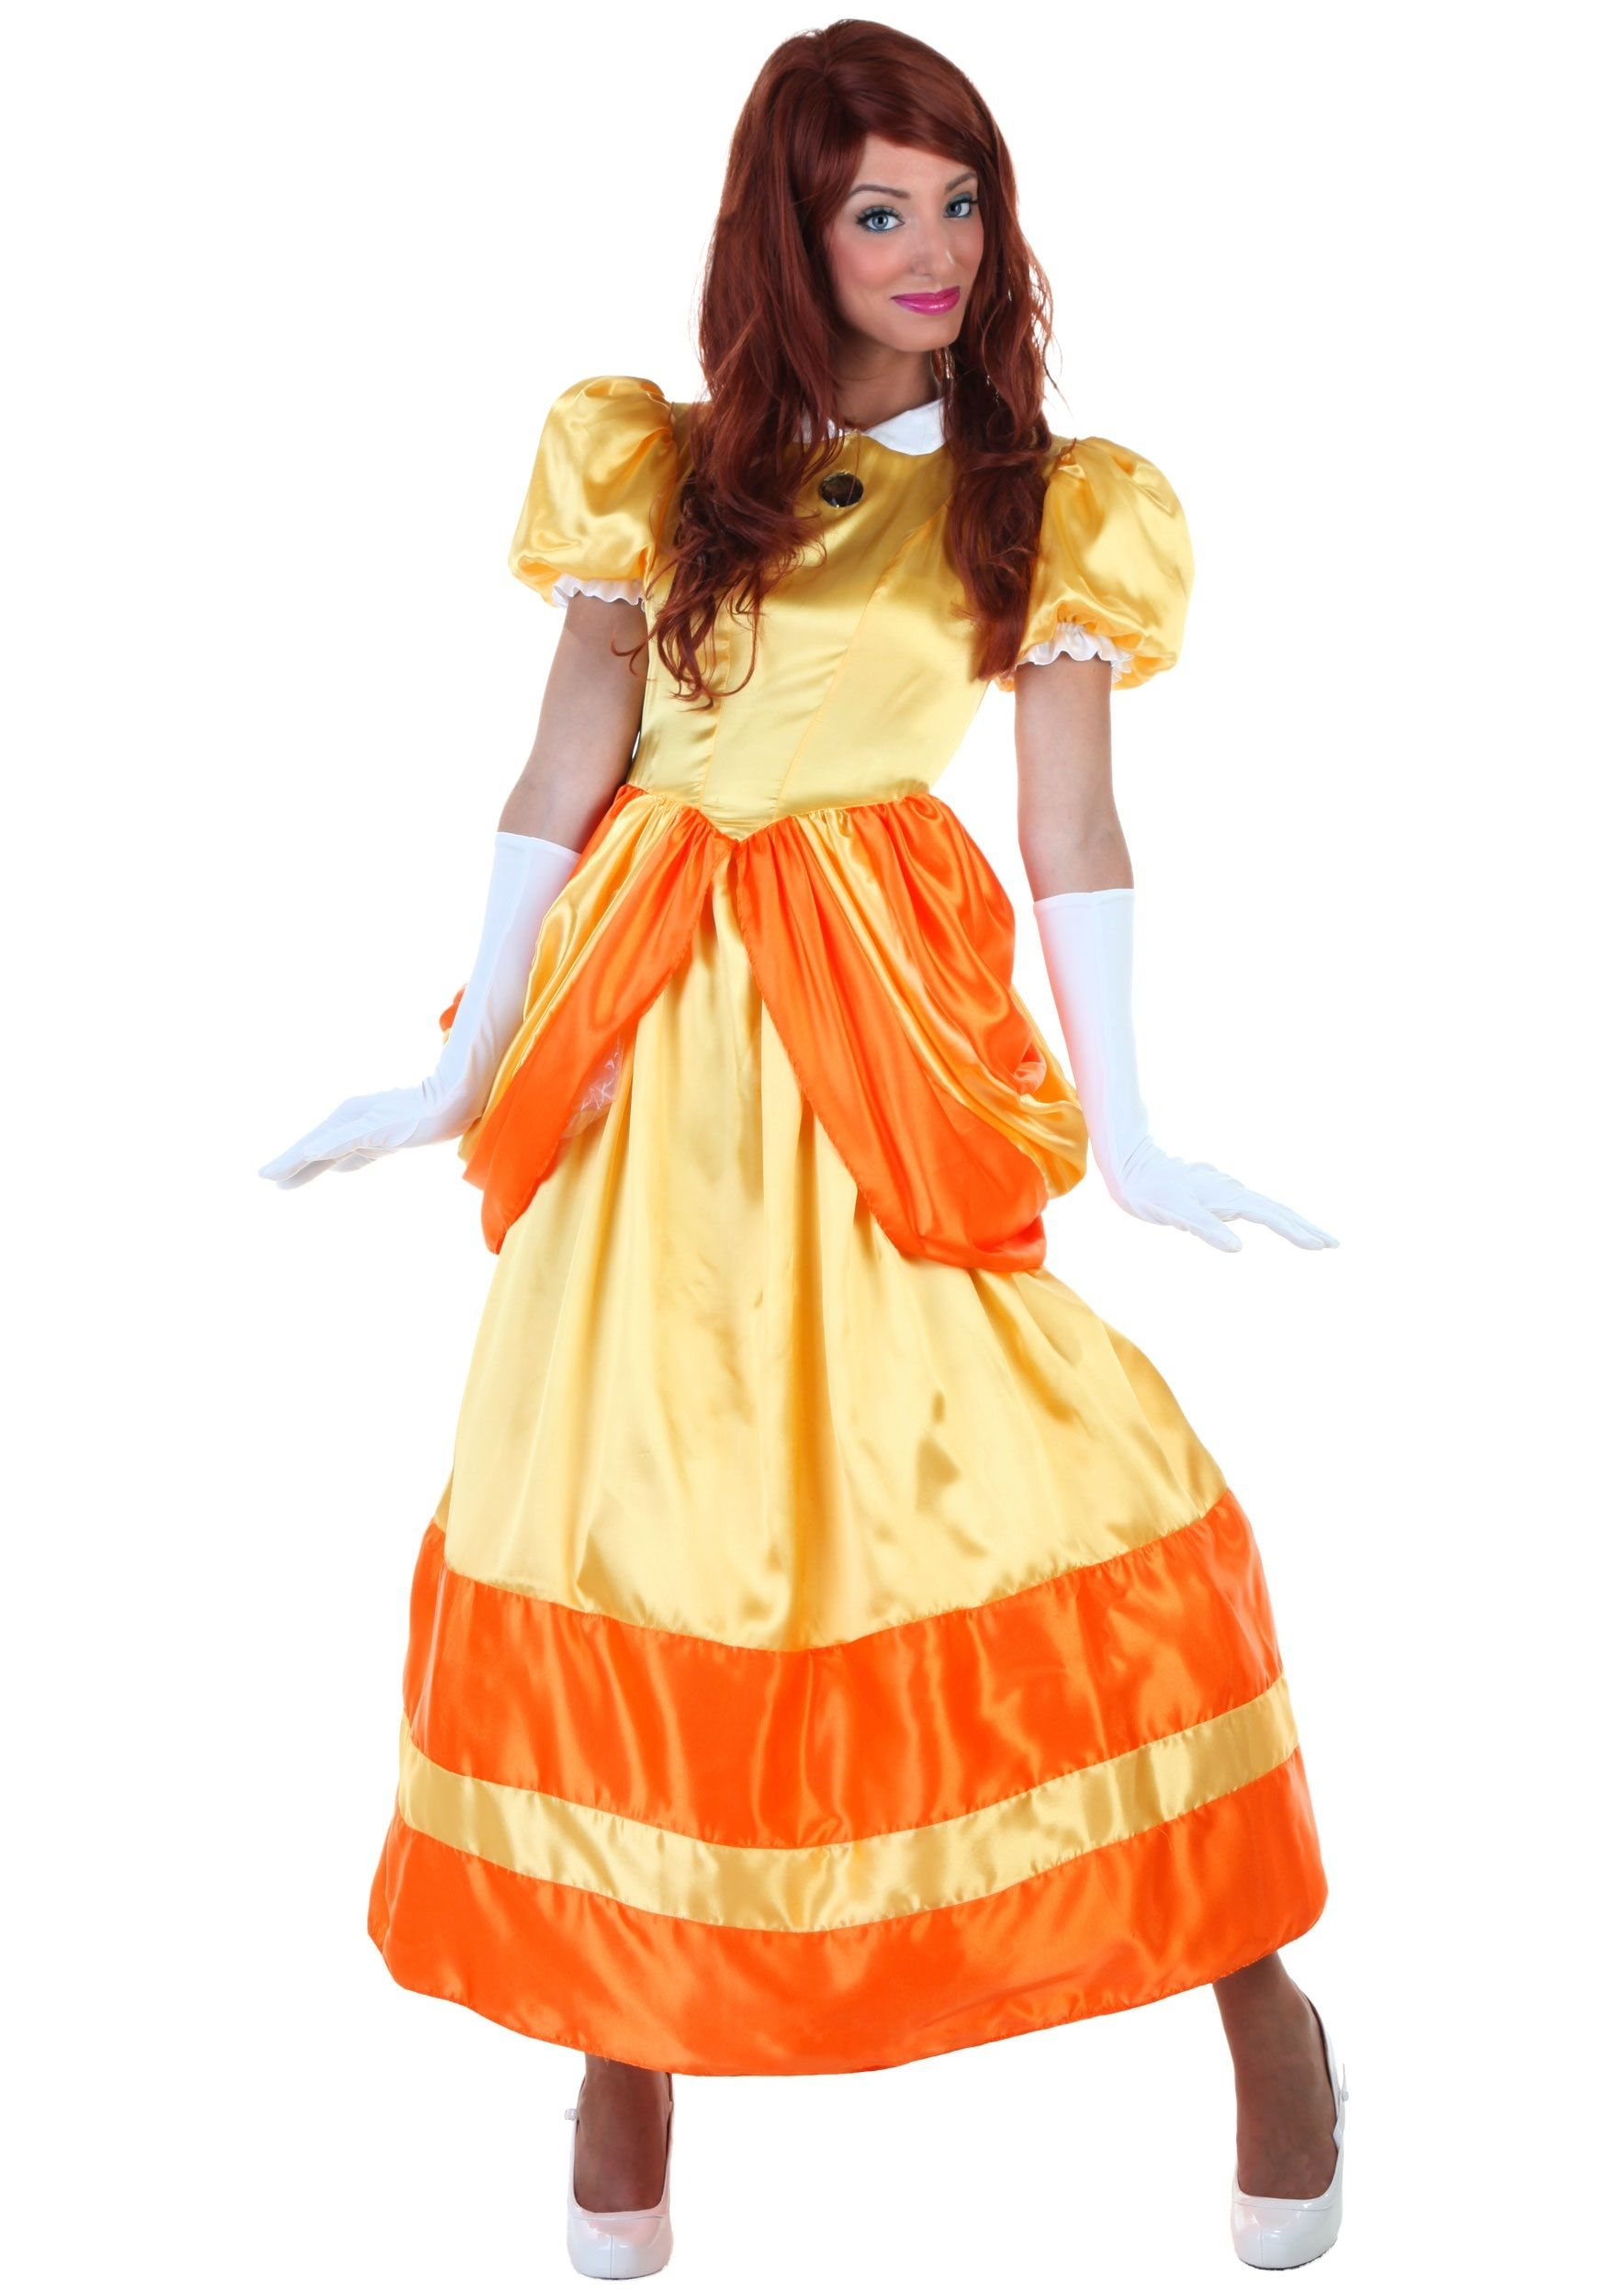 Plus Size Princess Daisy Cosplay Costume Woman Halloween Outfit Long Dress